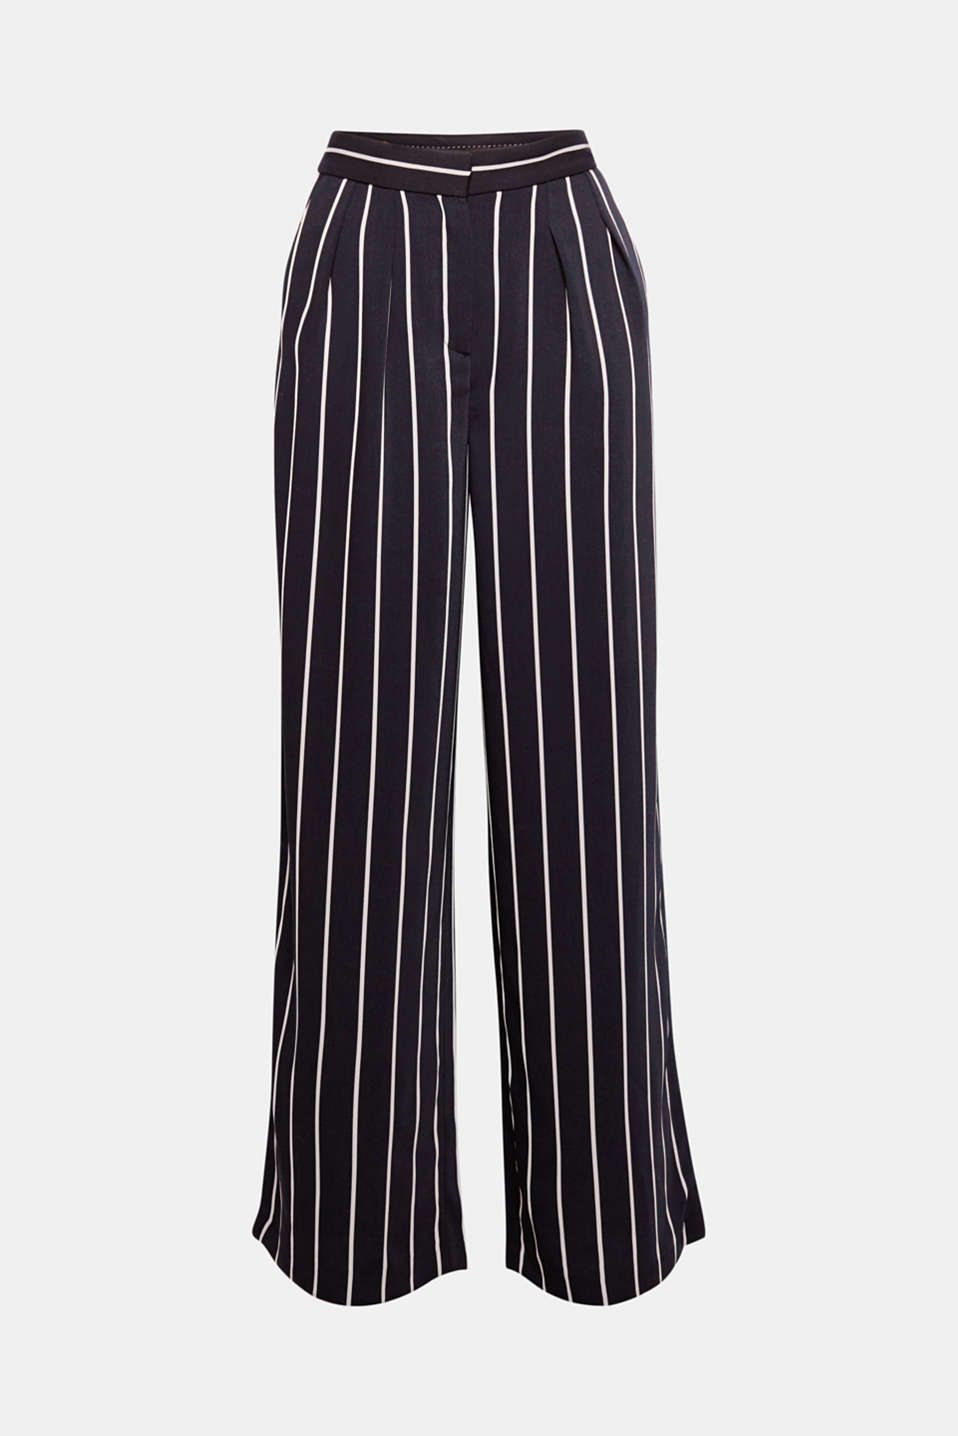 Flowing striped trousers with extra wide legs